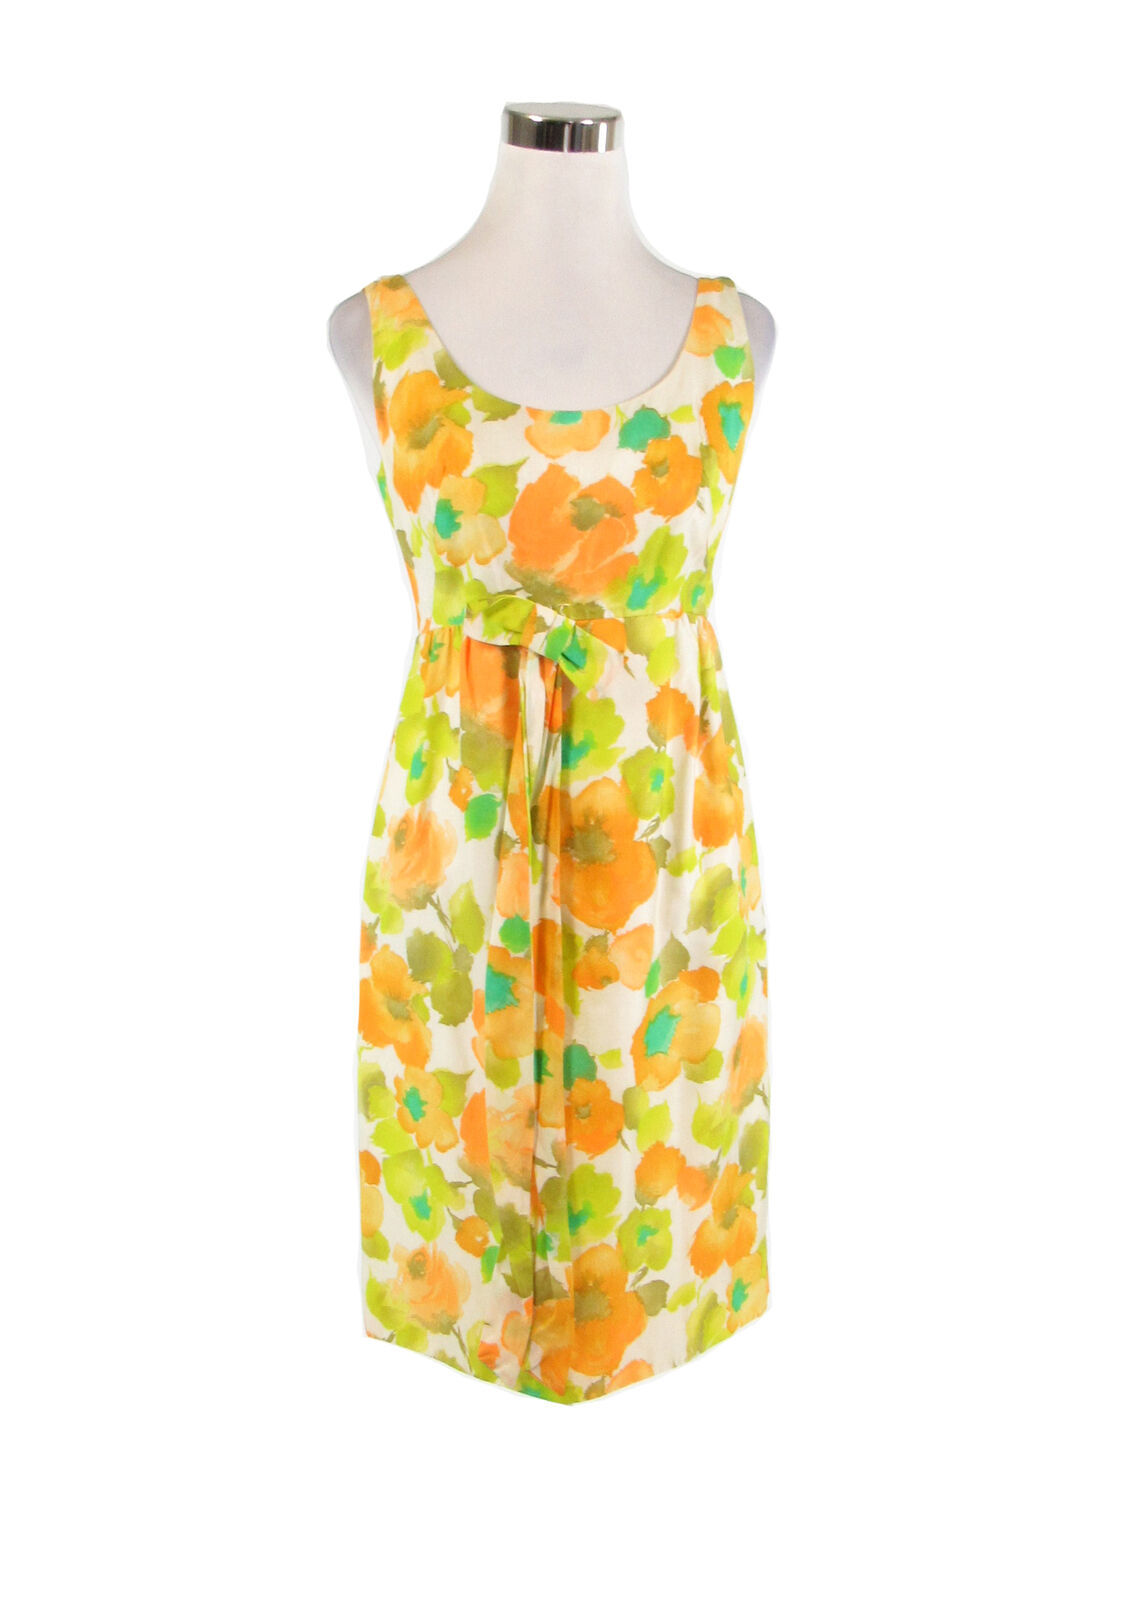 Primary image for Ivory yellow green floral print sleeveless vintage sheath dress S